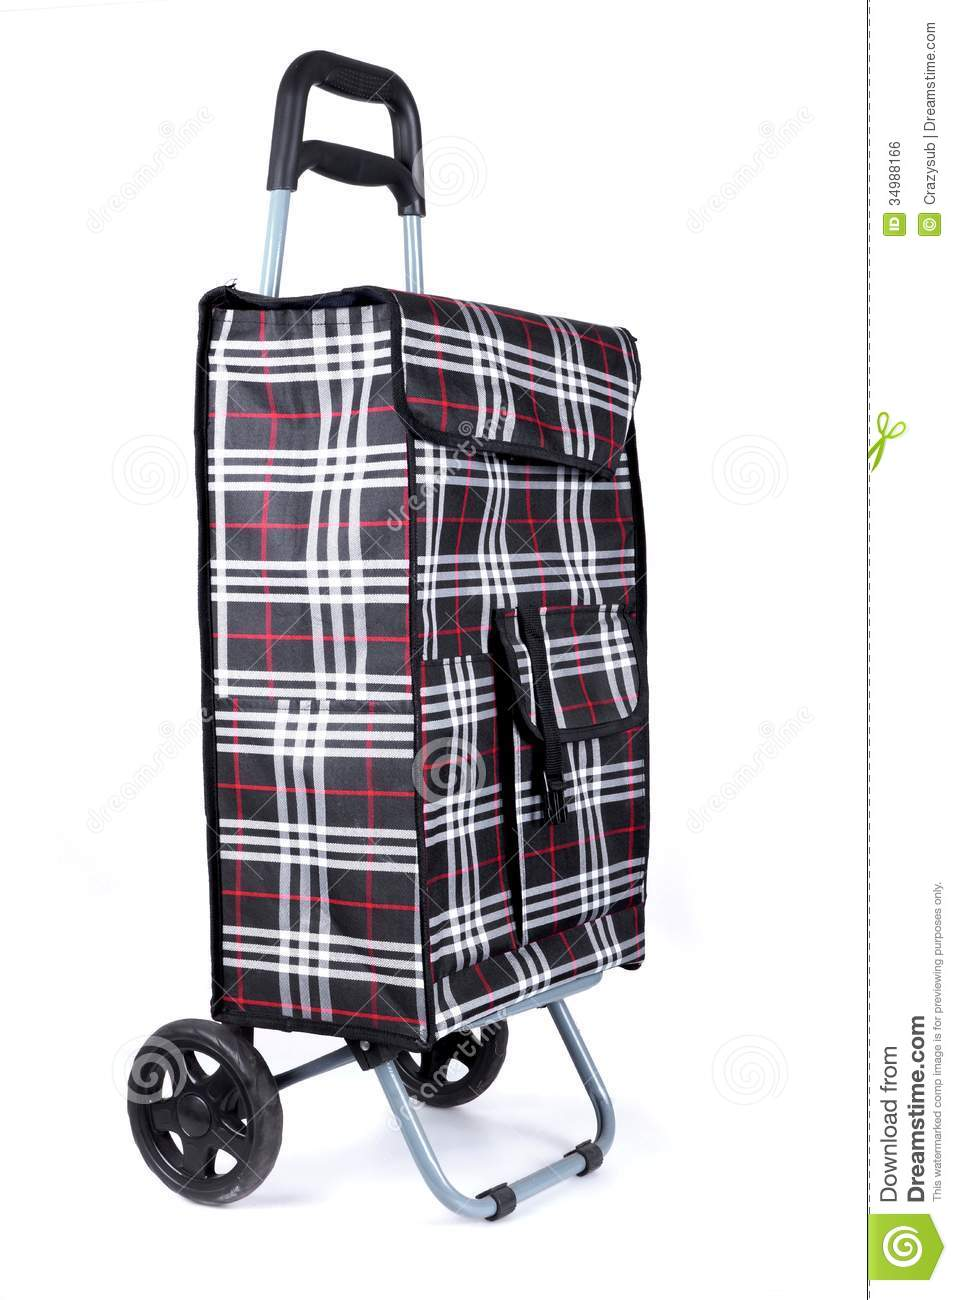 Shopping Trolley Bag Royalty Free Stock Image - Image: 34988166